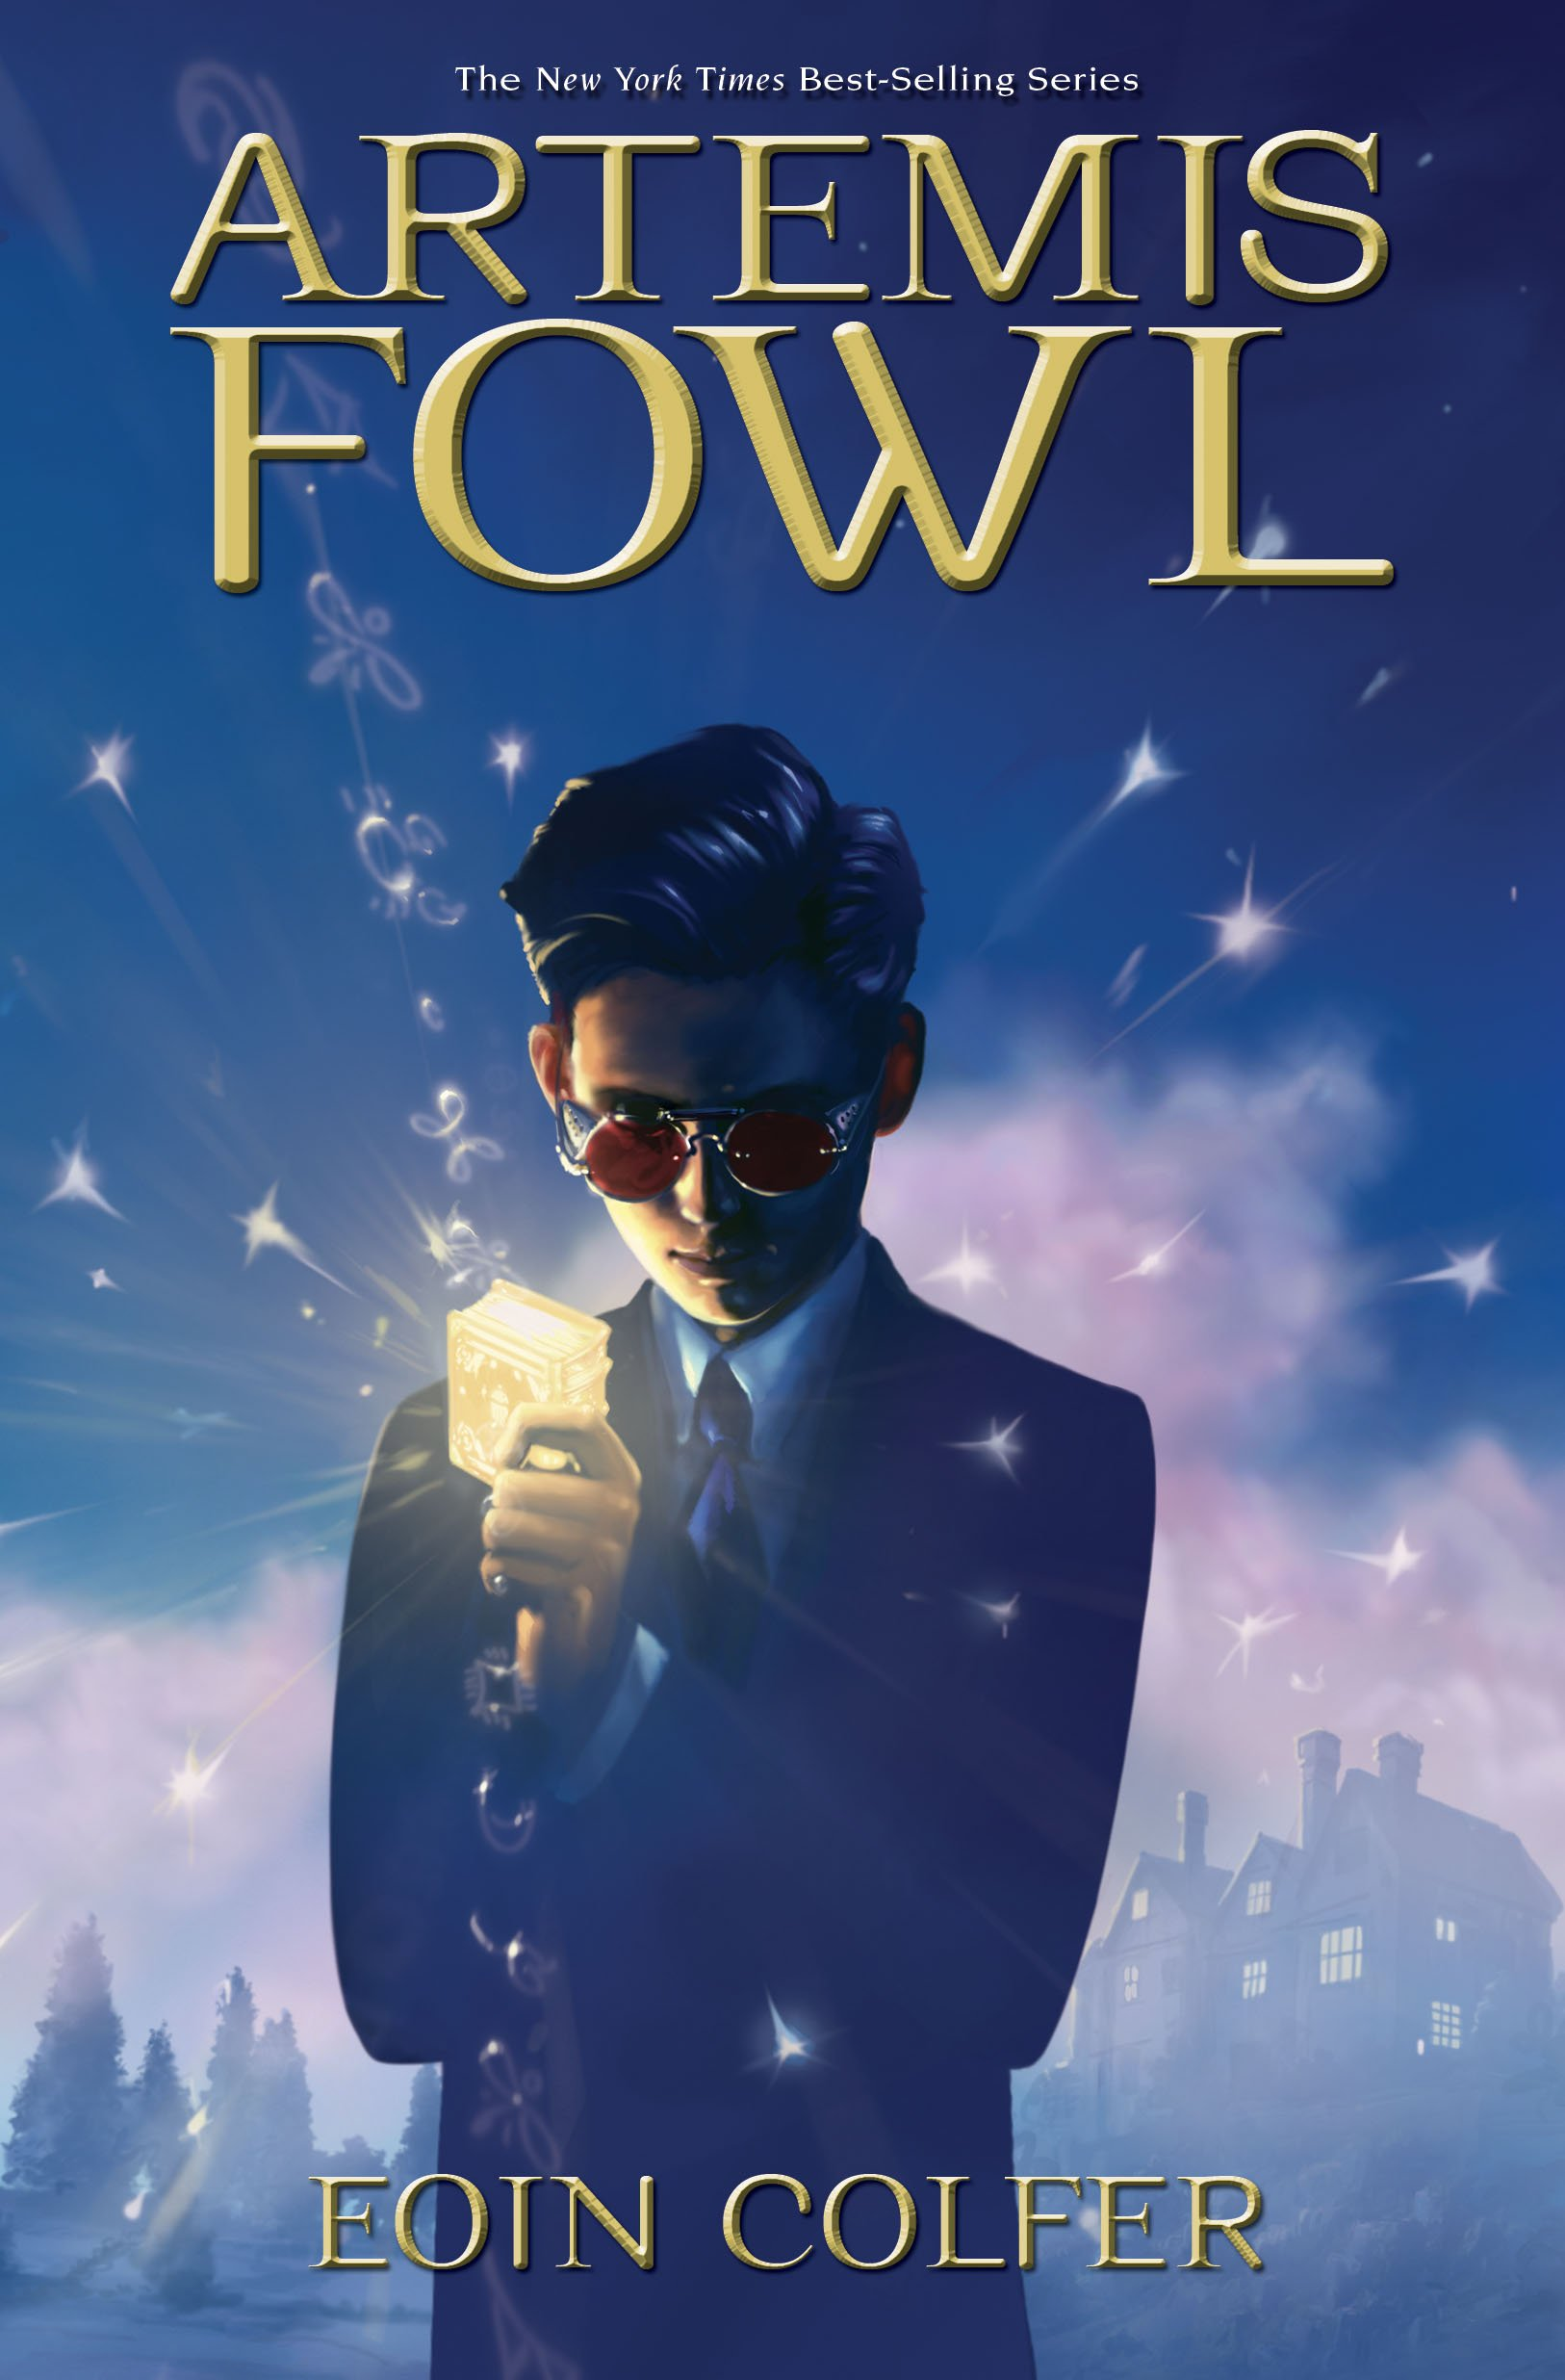 Image result for artemis fowl book cover